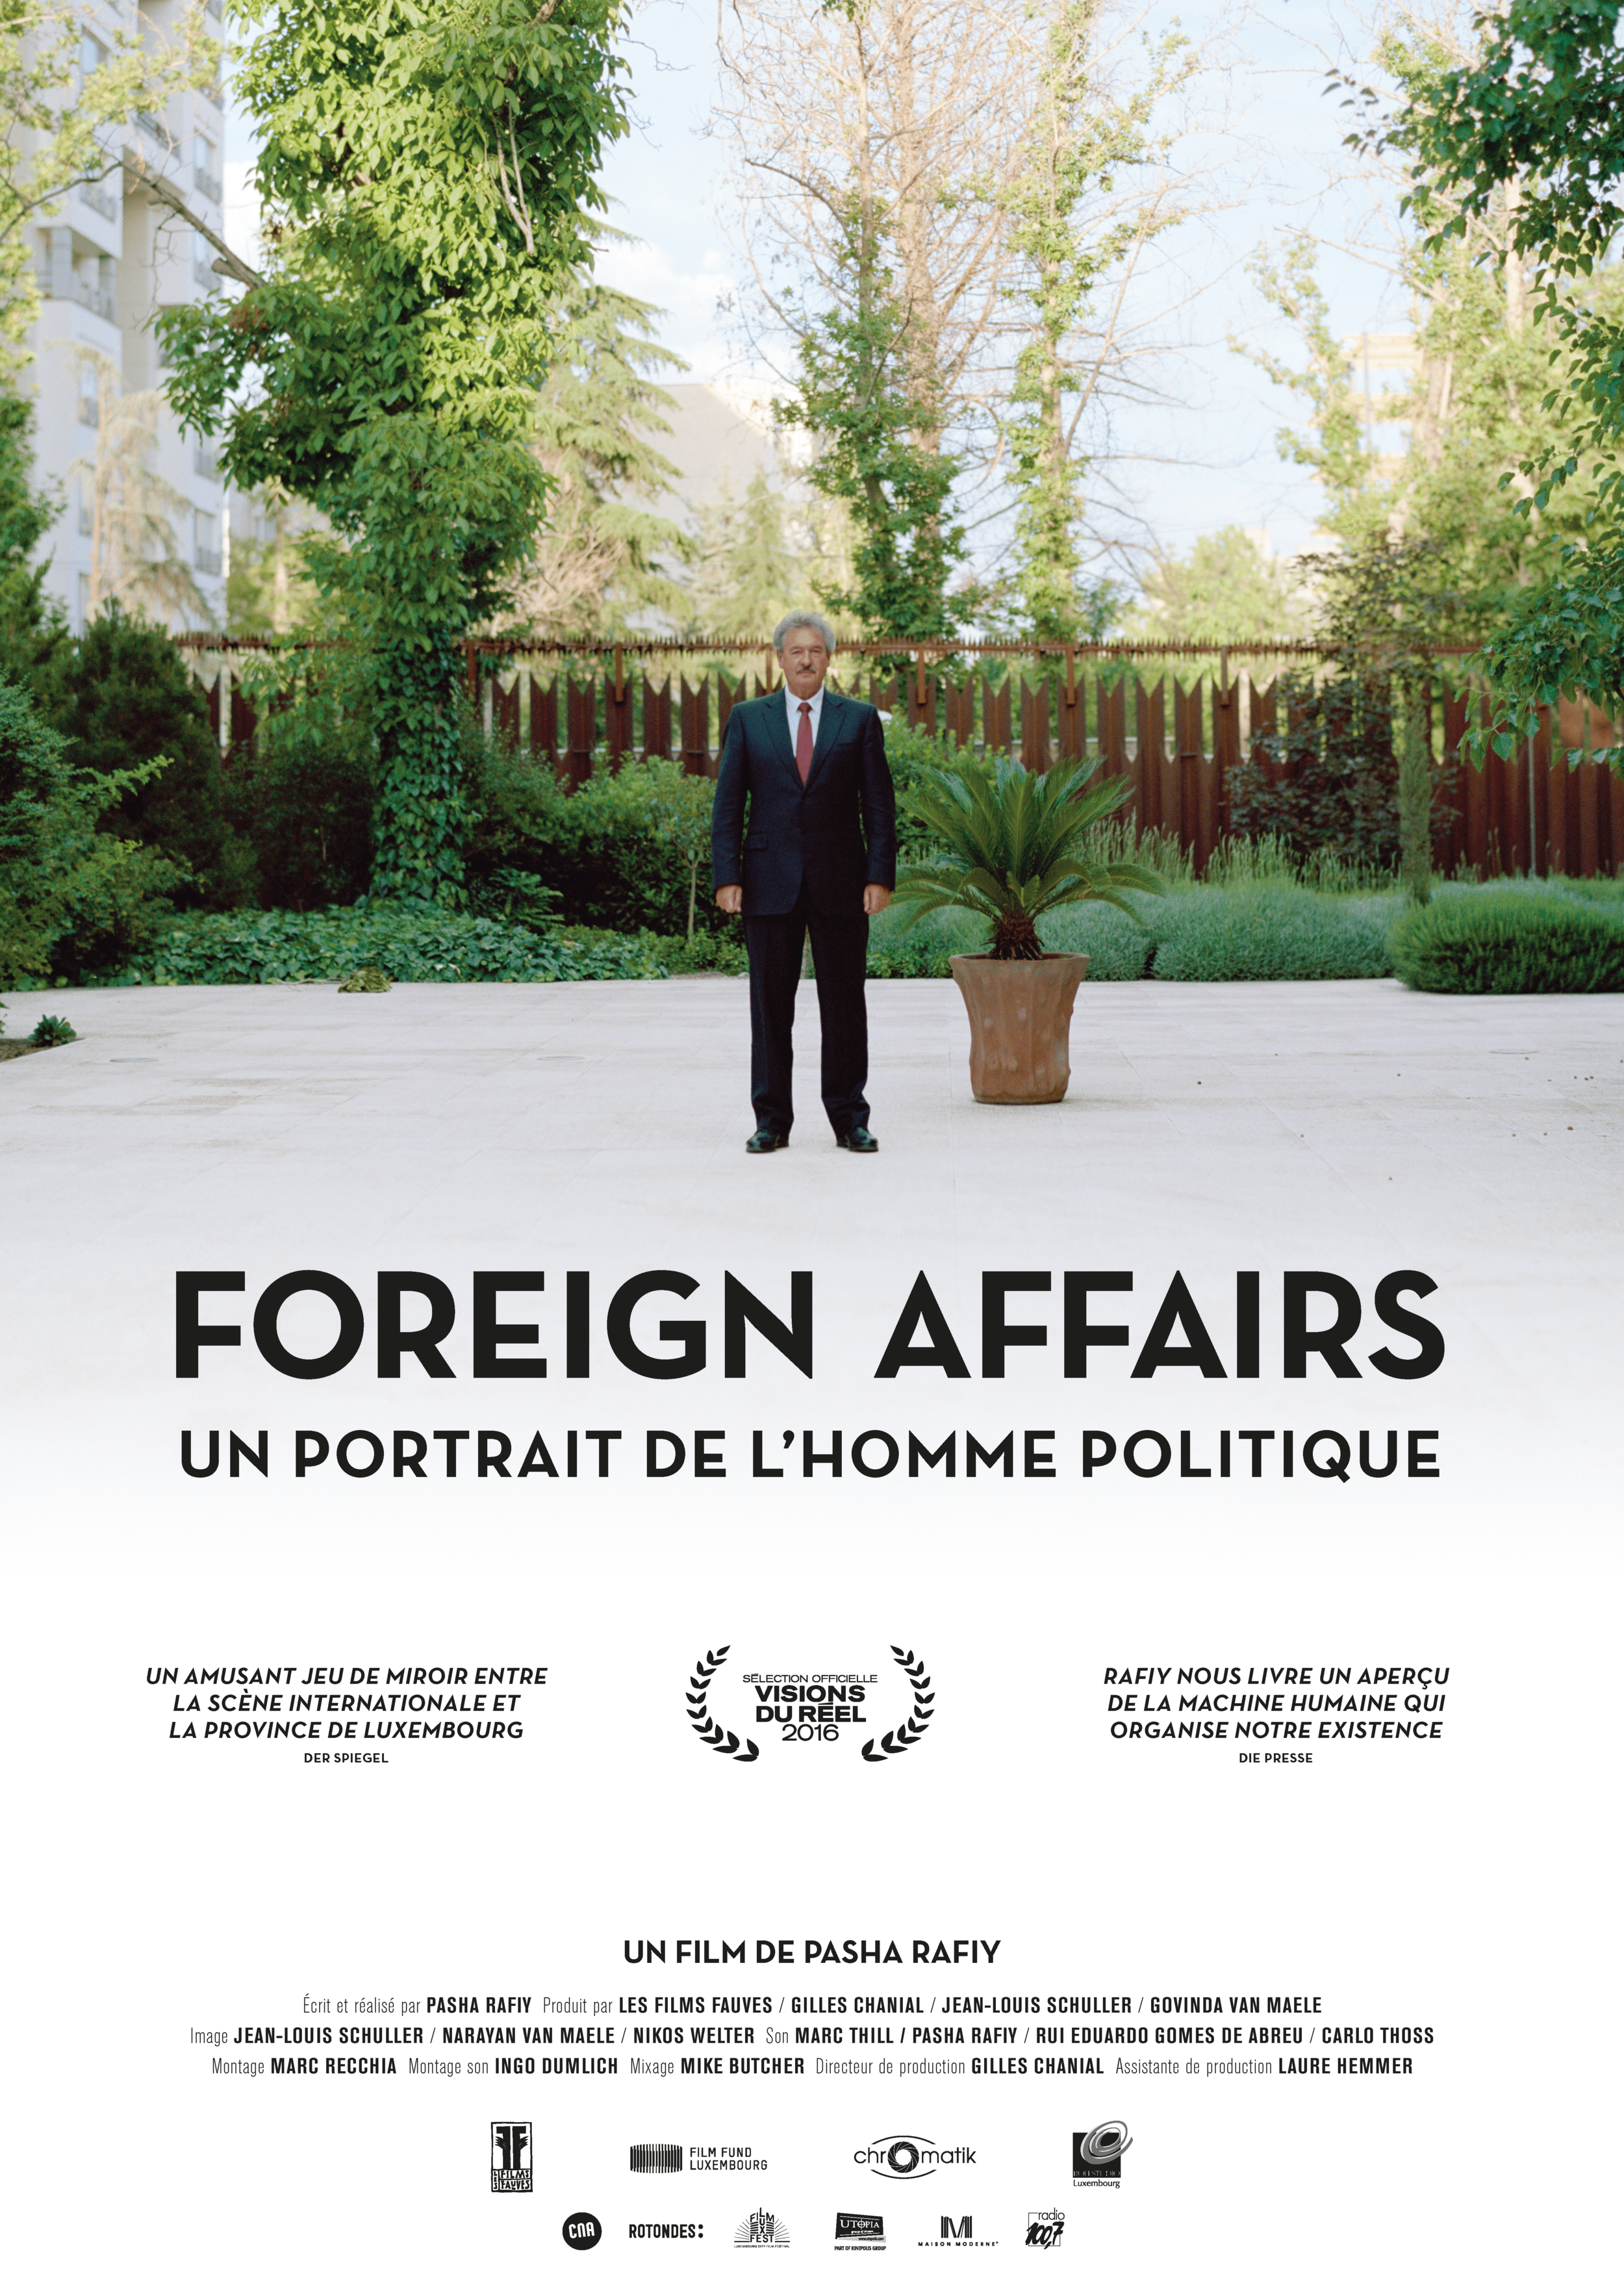 FOREIGN AFFAIRS - Directed by Pasha RAFIYWith Jean ASSELBORNYear:2016Original Version:Luxembourgish, English, German, FrenchGenre:Investigation, CultureRunning Time: 75minProduction companies:LES FILMS FAUVES (LU)